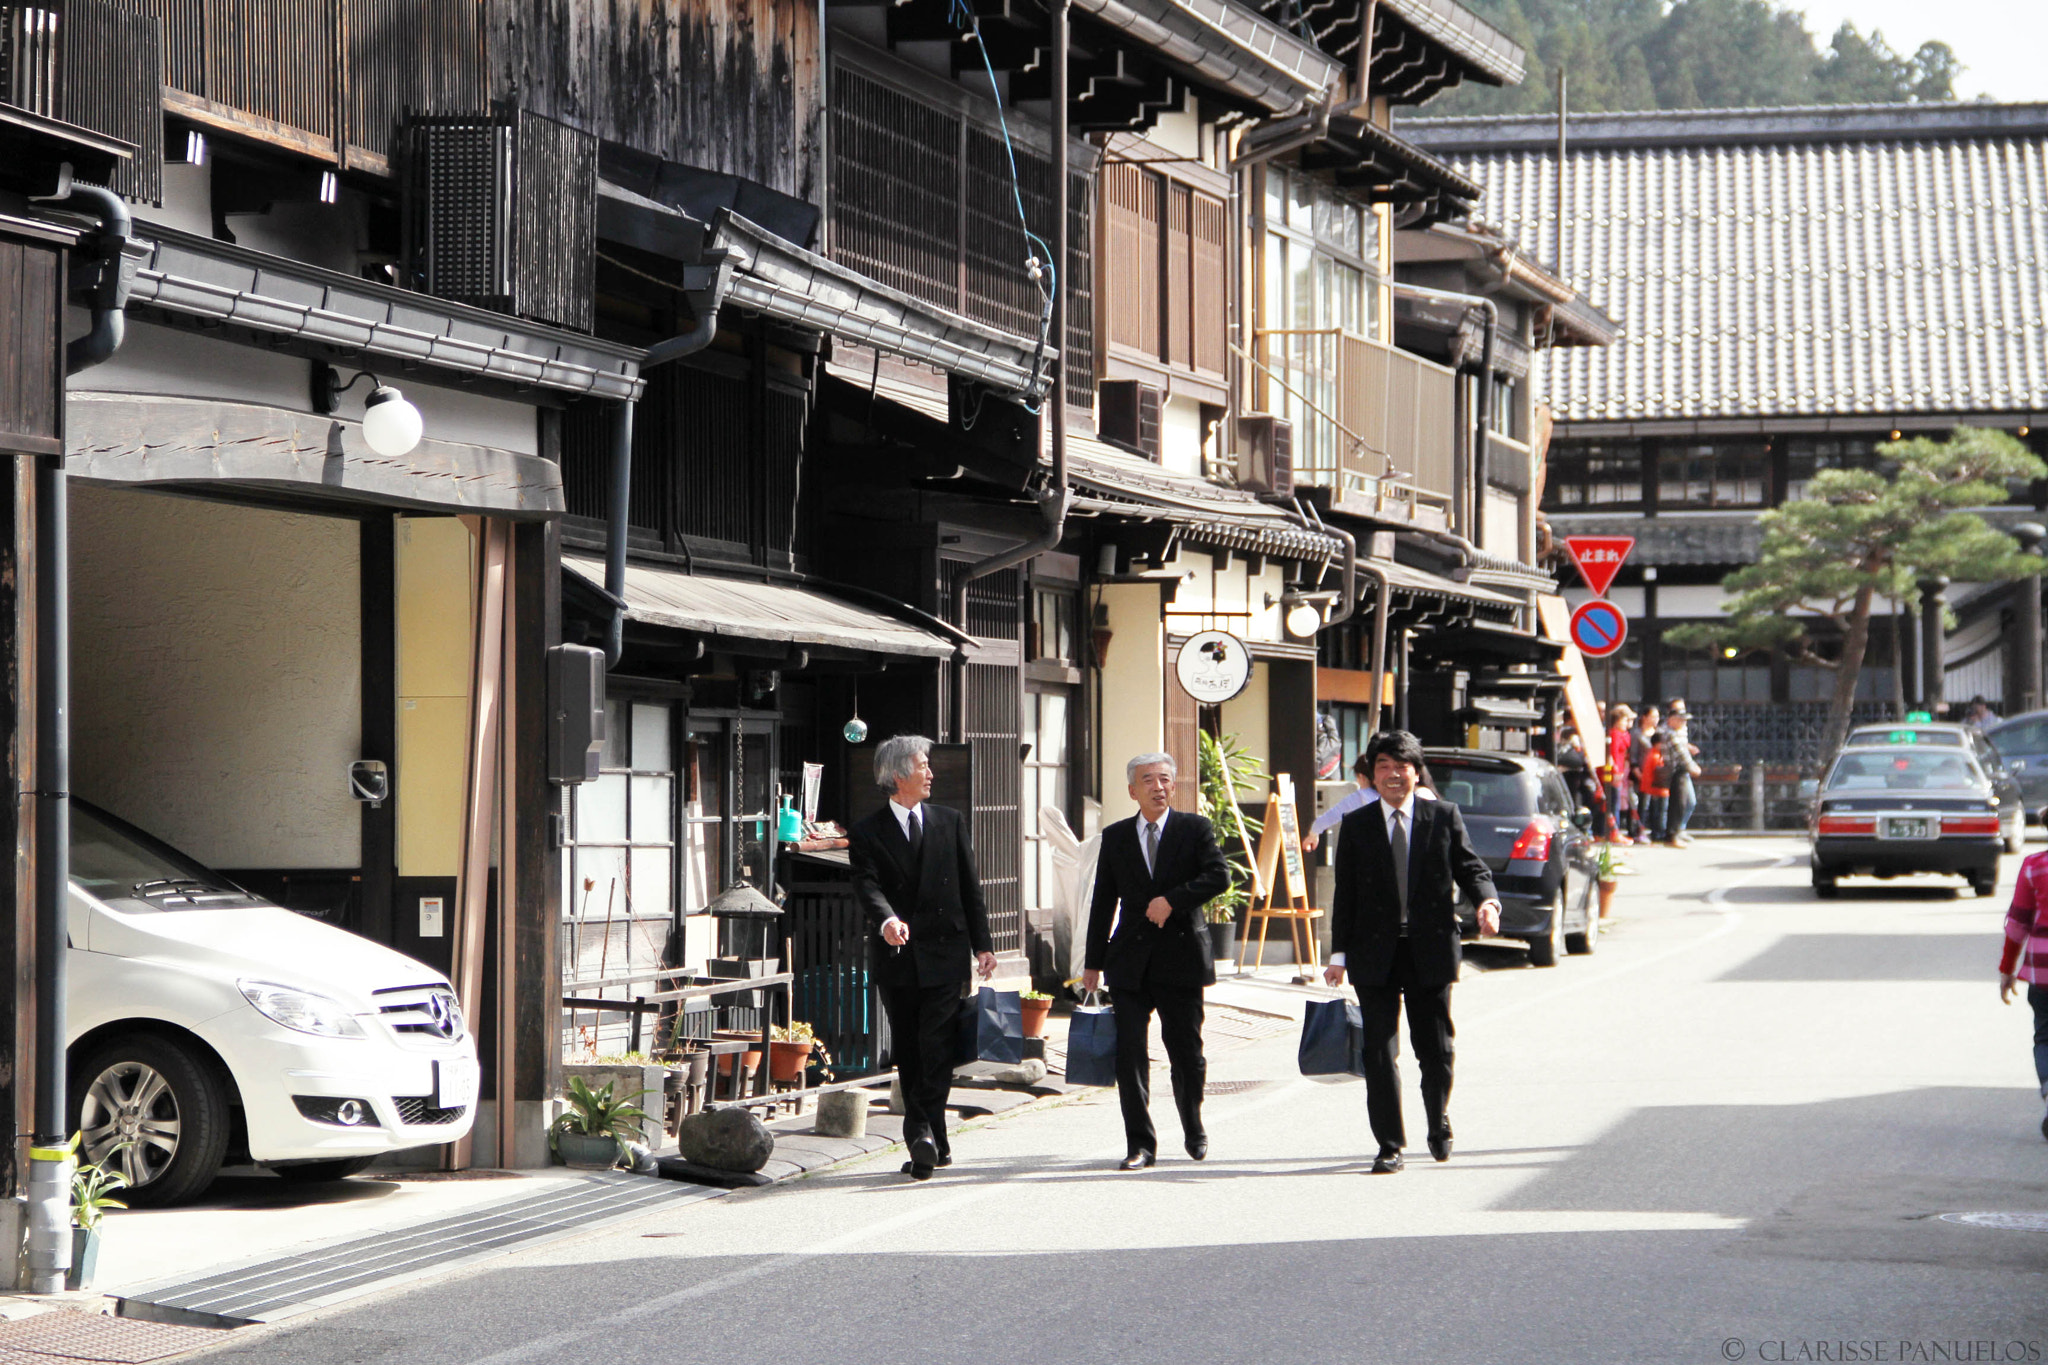 a8977fa5c09062e3244764607635a179 - Japan Travel Blog April 2015: Takayama Old Town